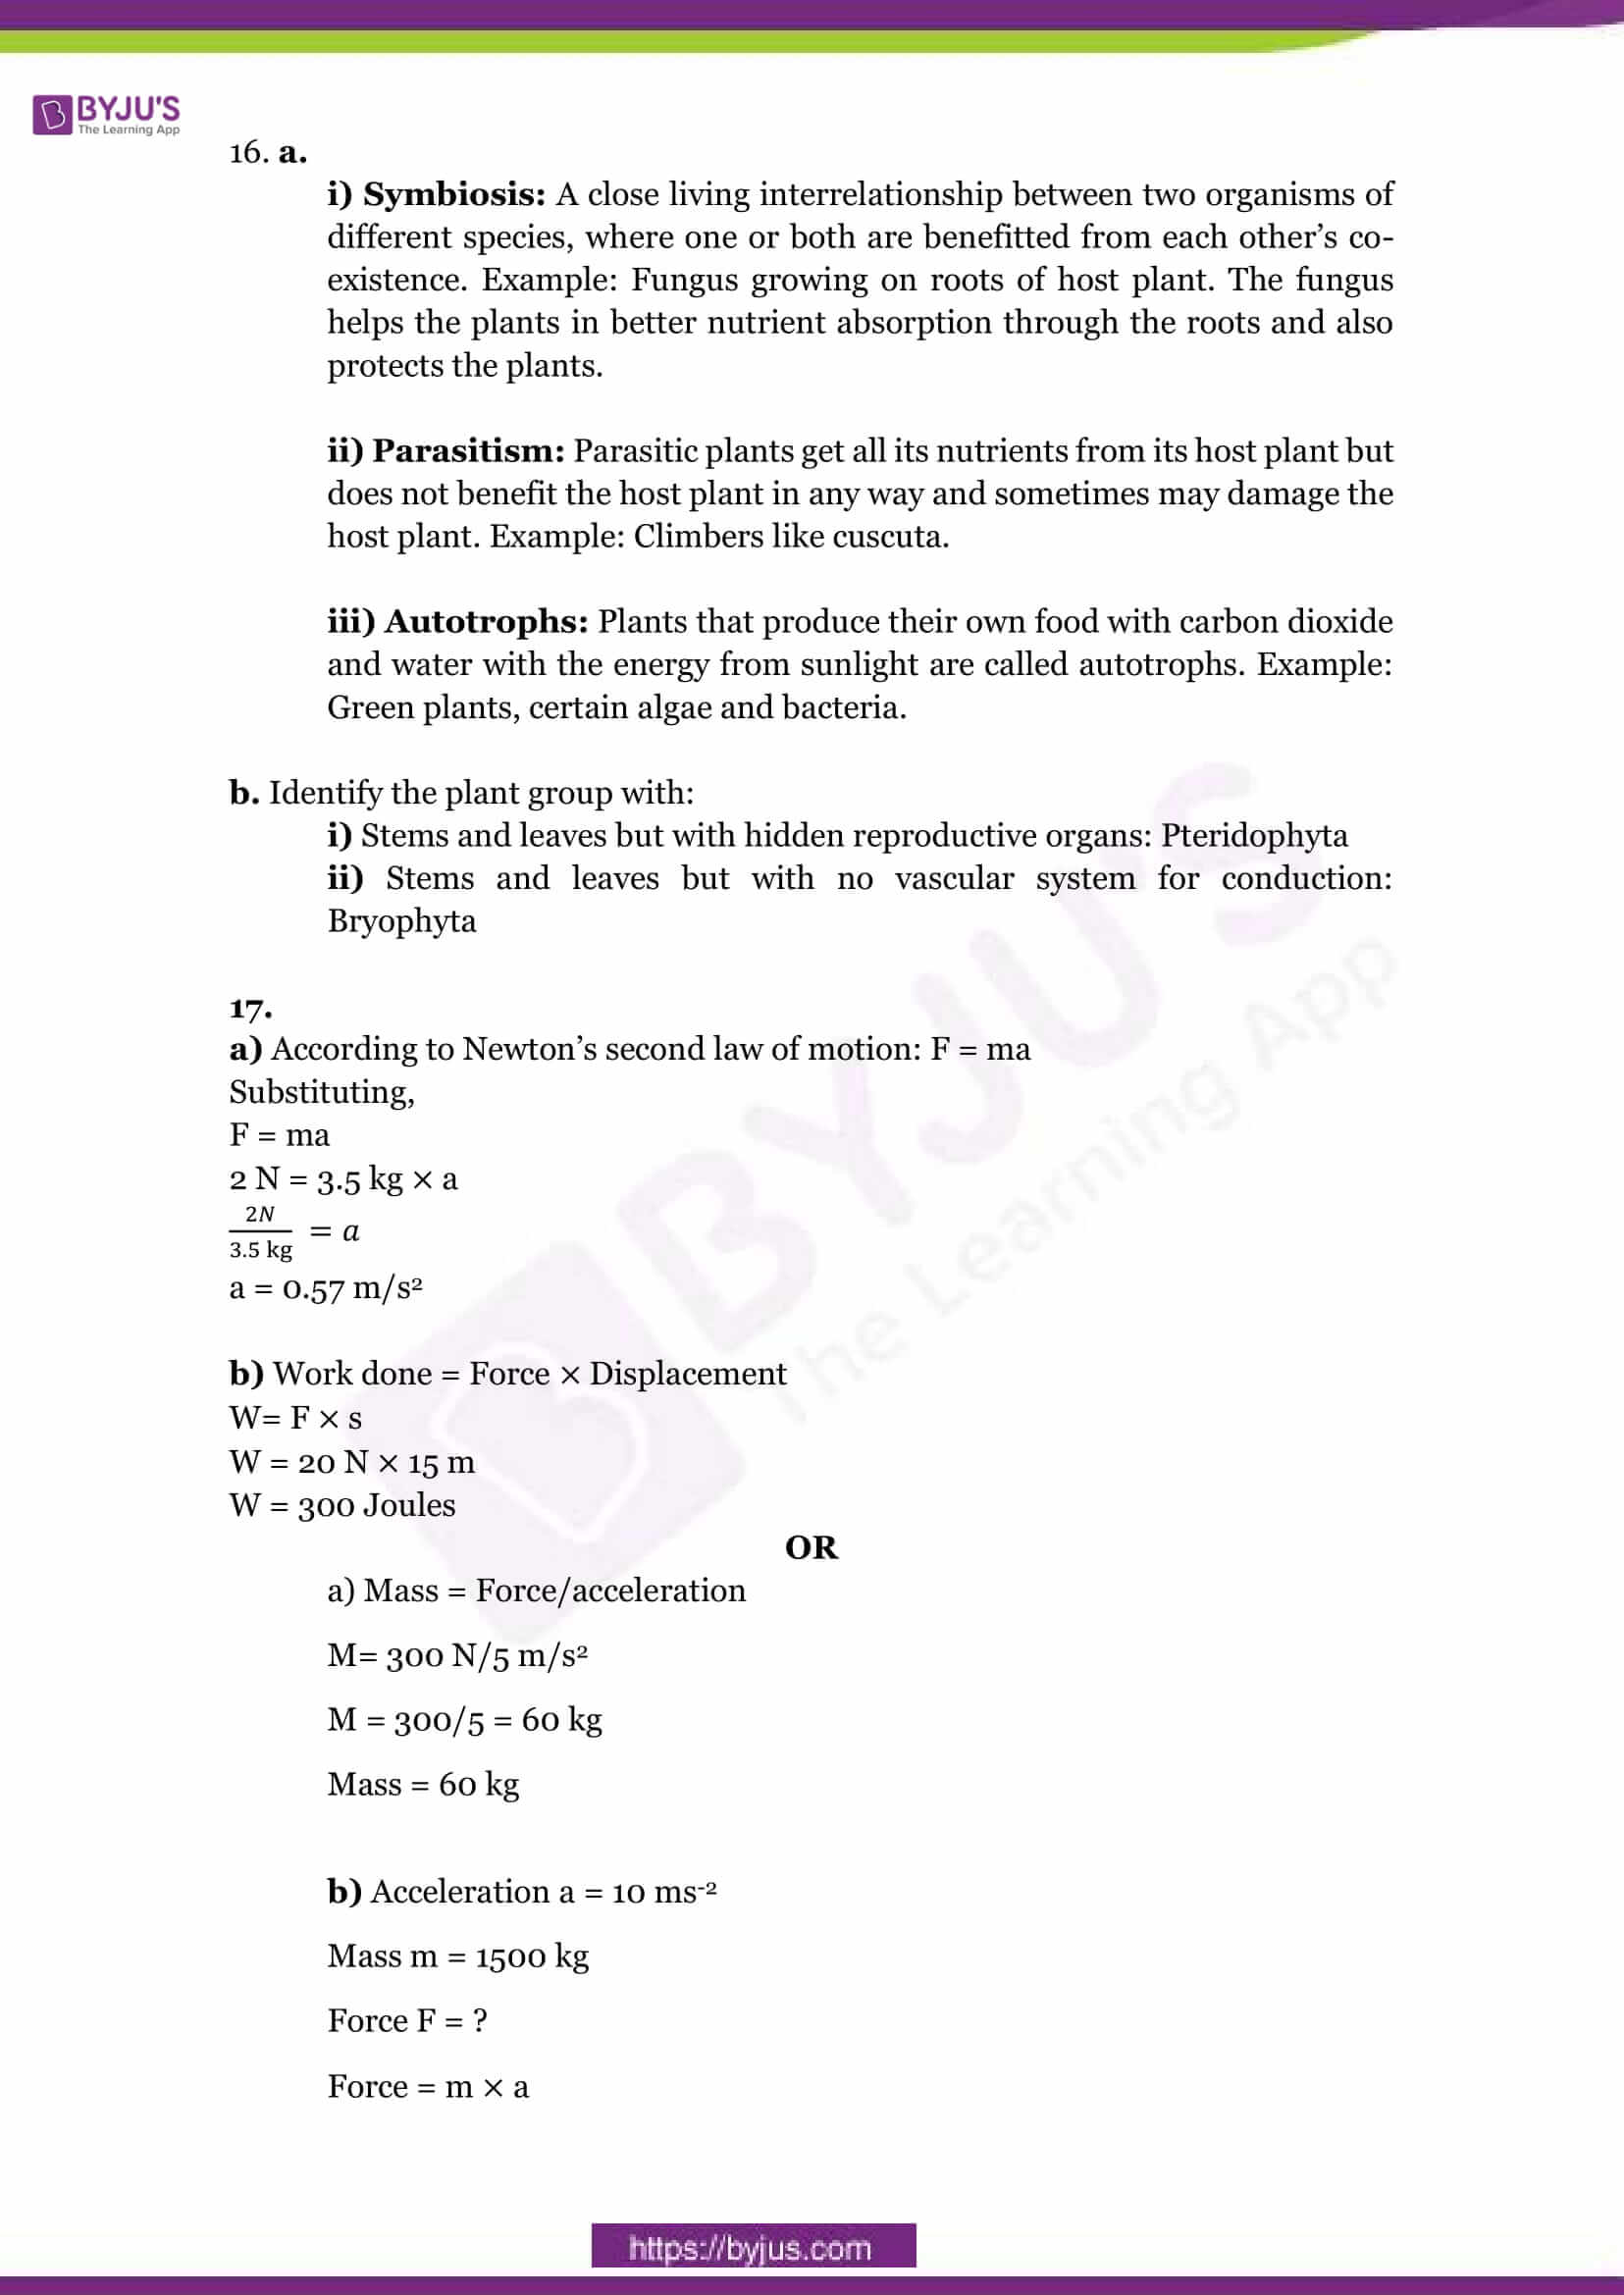 cbse sample paper class 9 science set 1 solution